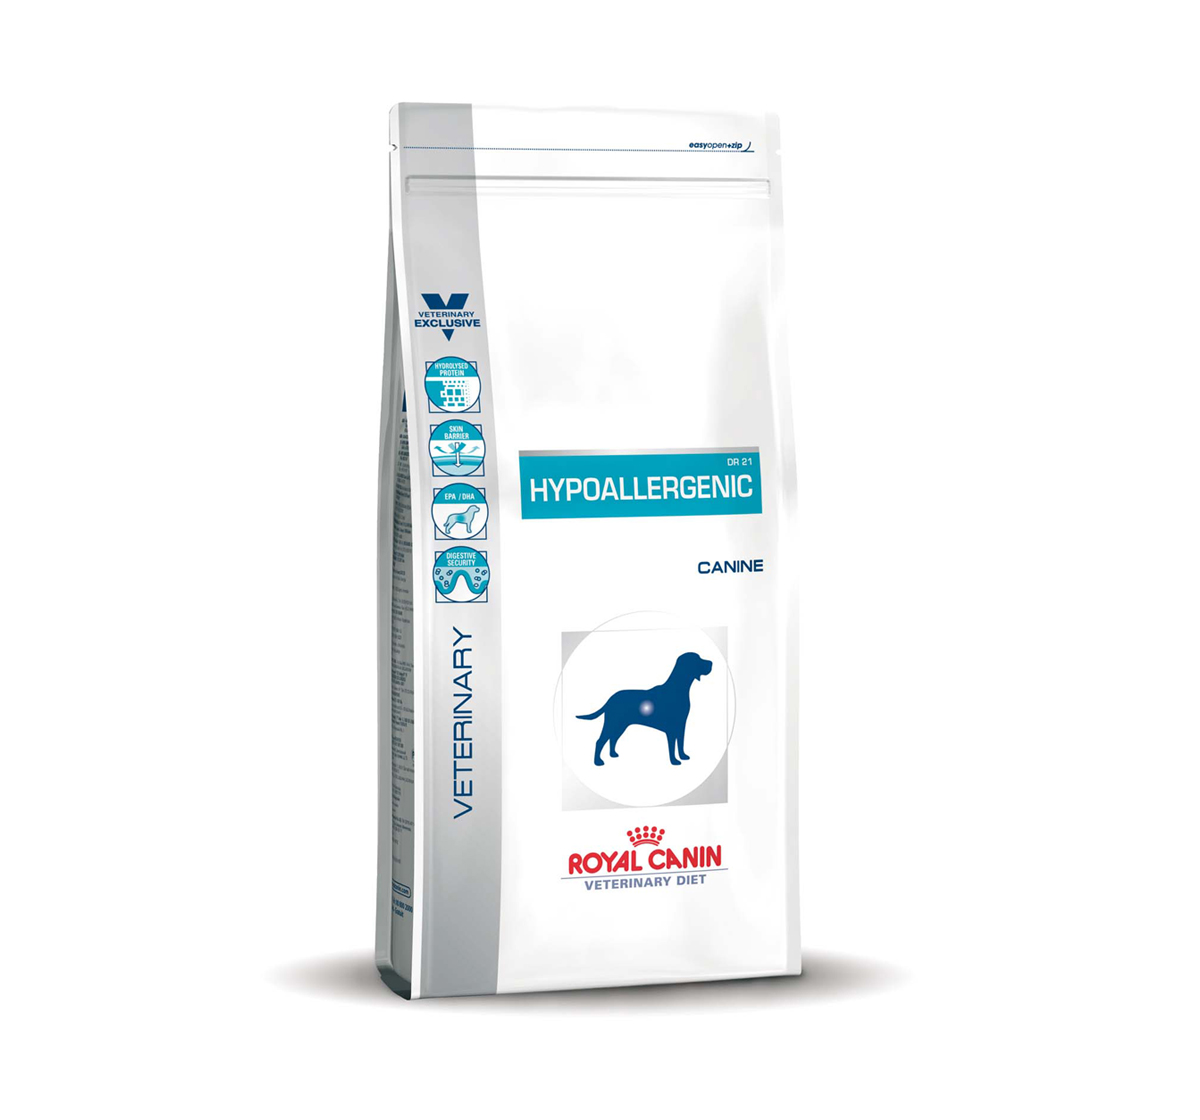 Royal Canin Veterinary Diet Hypoallergenic - 7 Kg